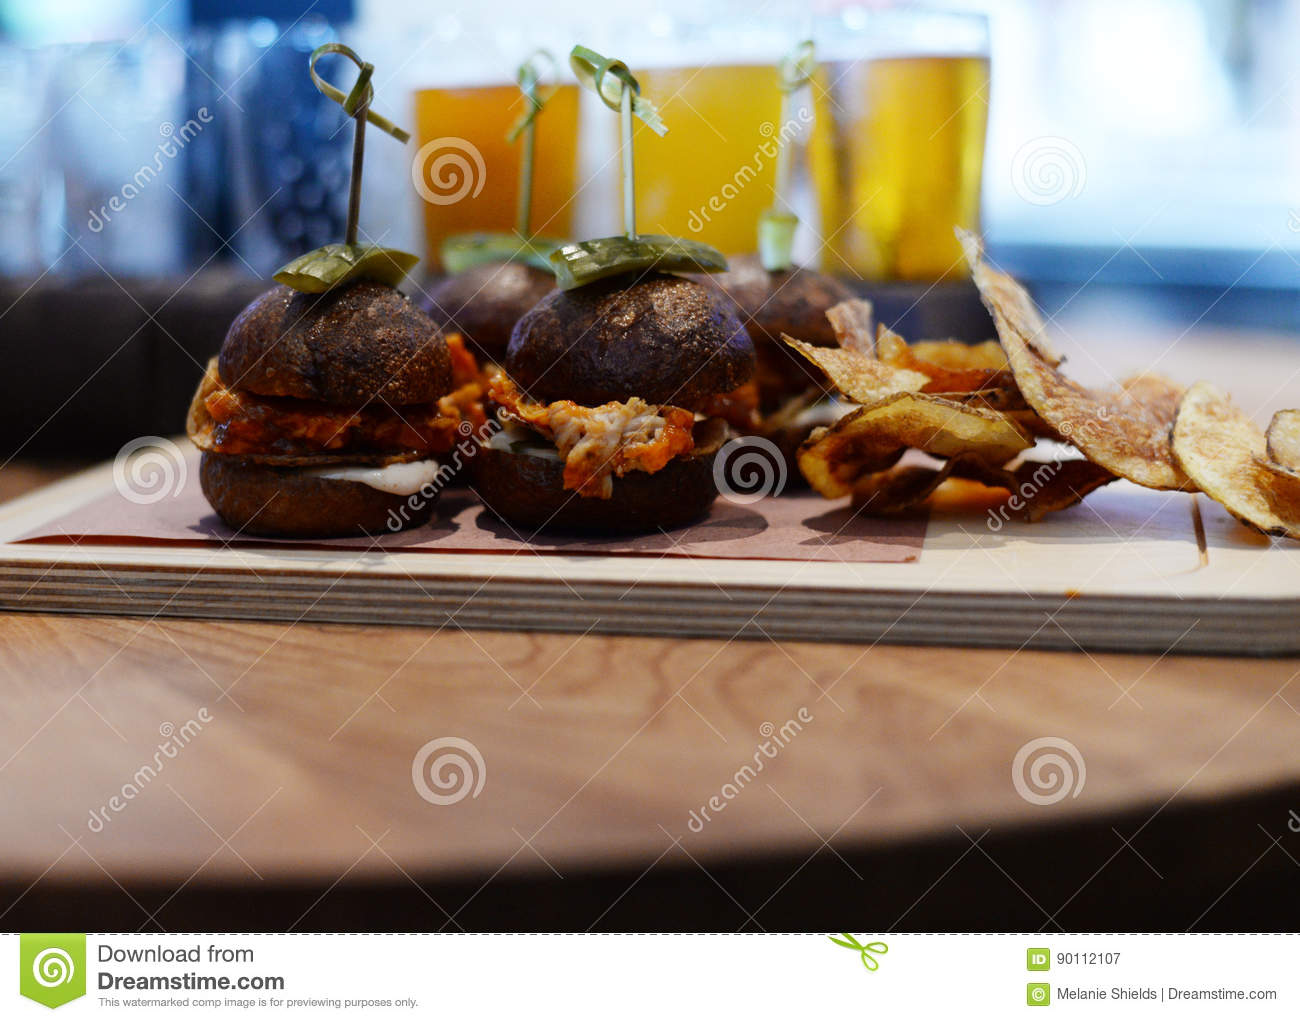 Sliders Burgers Plated On Restaurant Table With Chips And Drinks